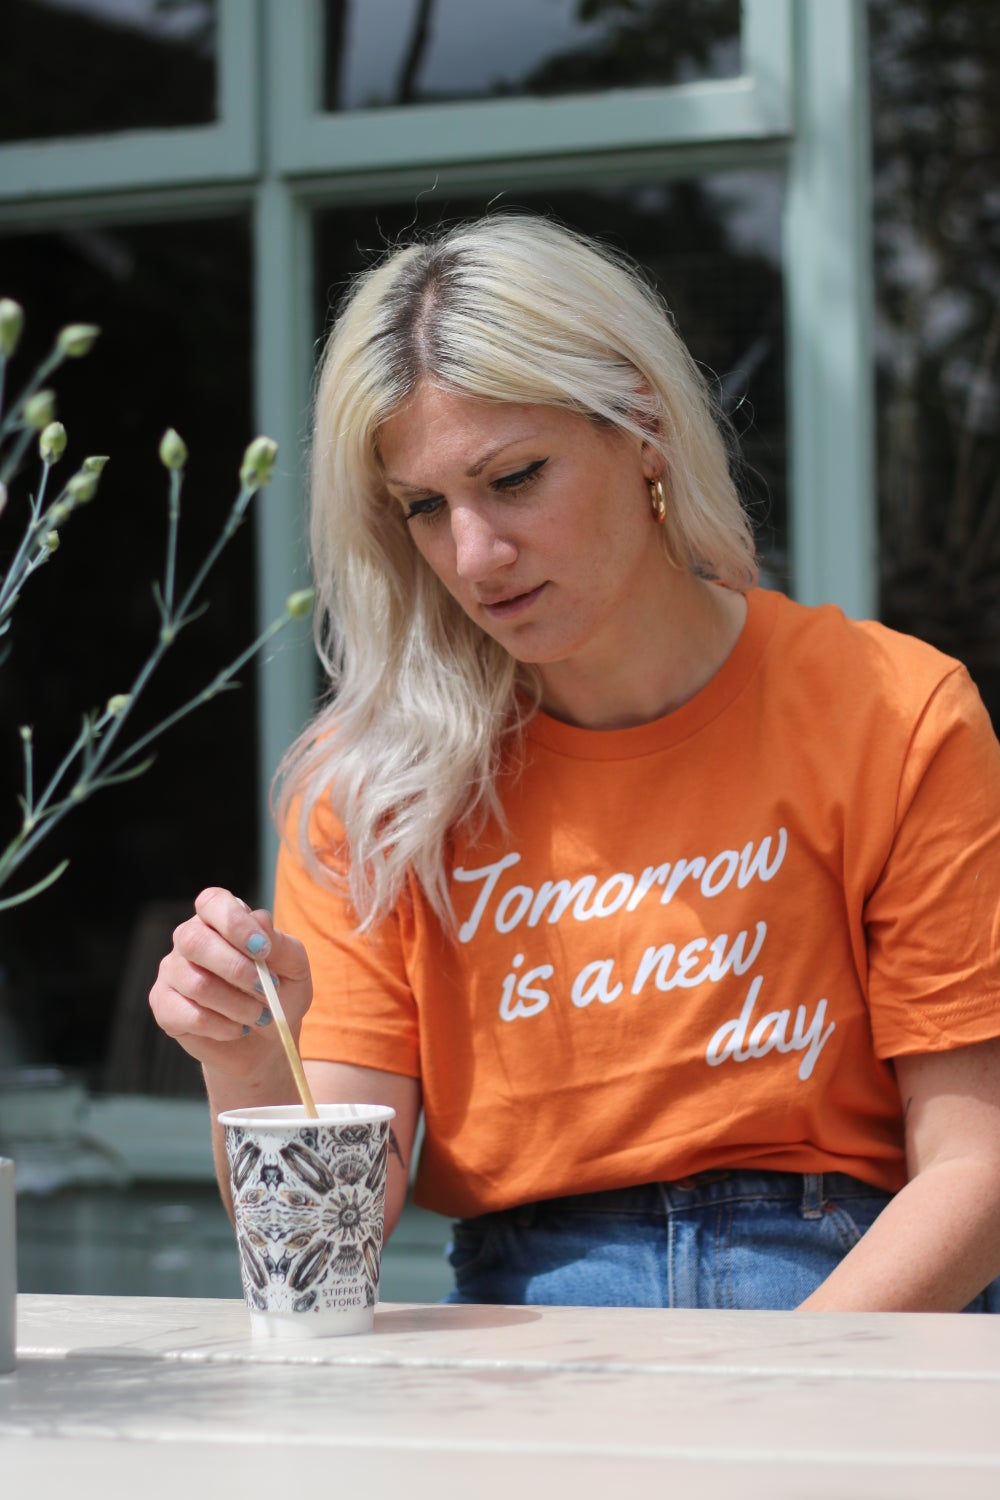 Lady wearing an orange t-shirt which says tomorrow is another day